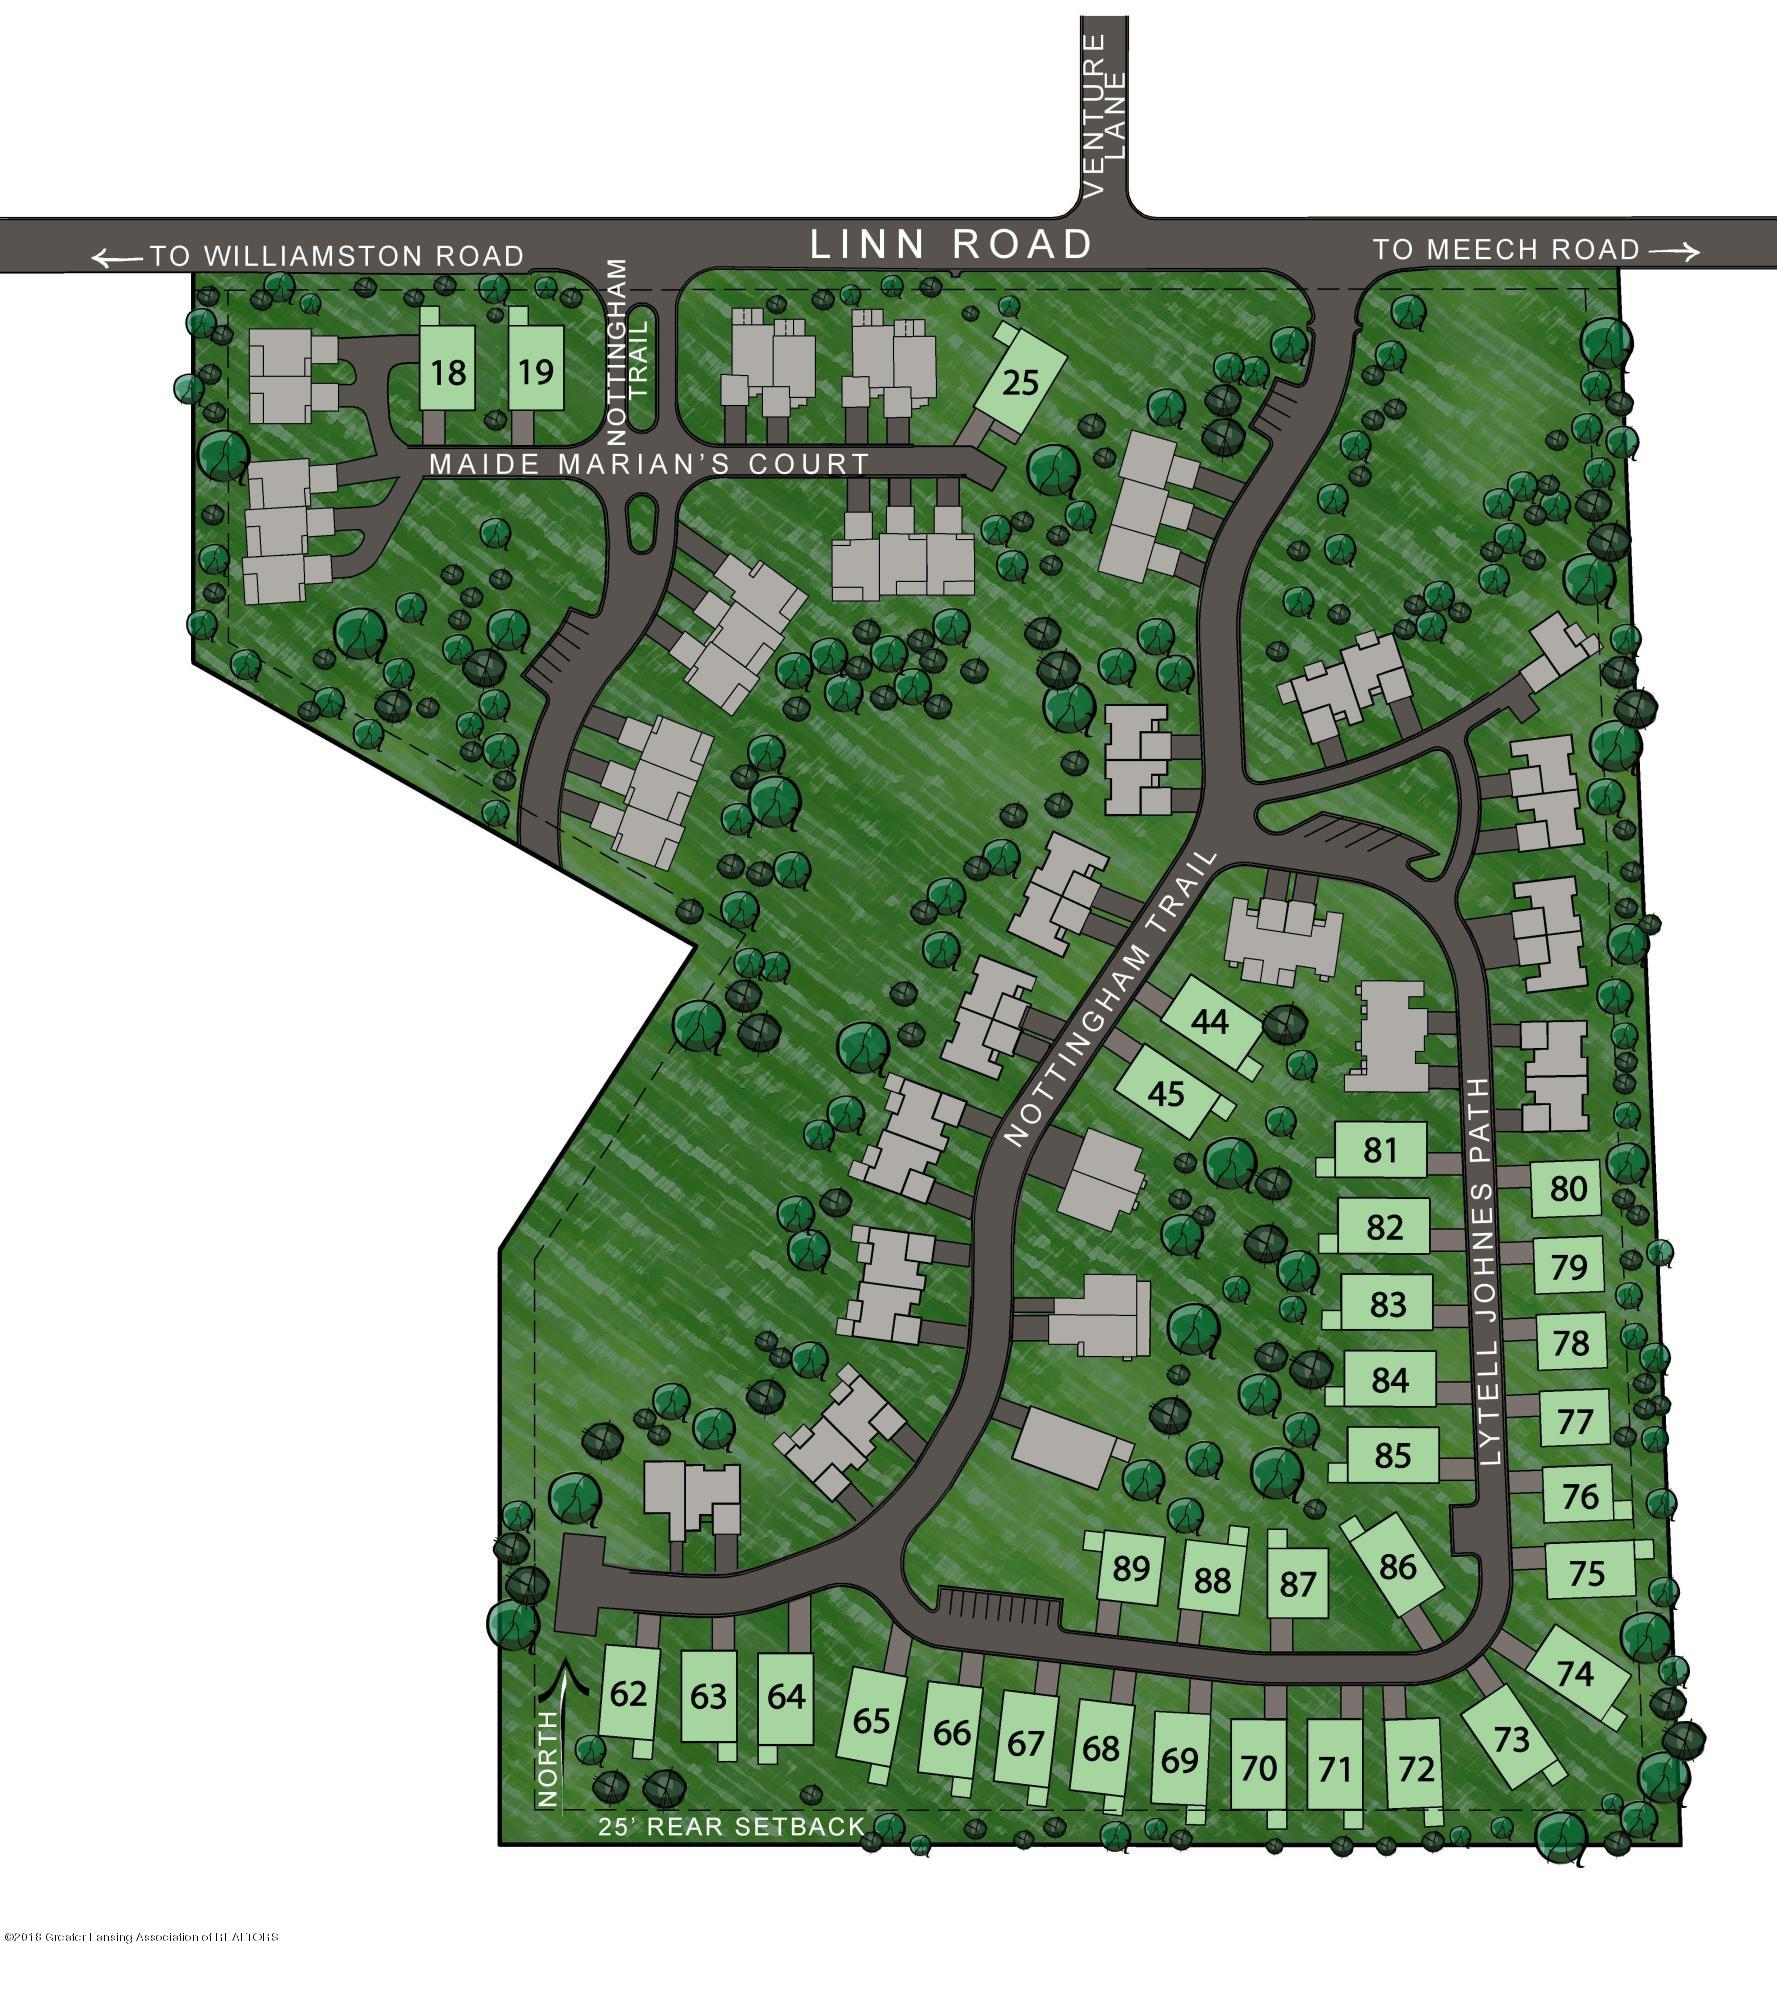 1555 Lytell Johnes Path  - Nottingham Condo Map-page-001 - 4